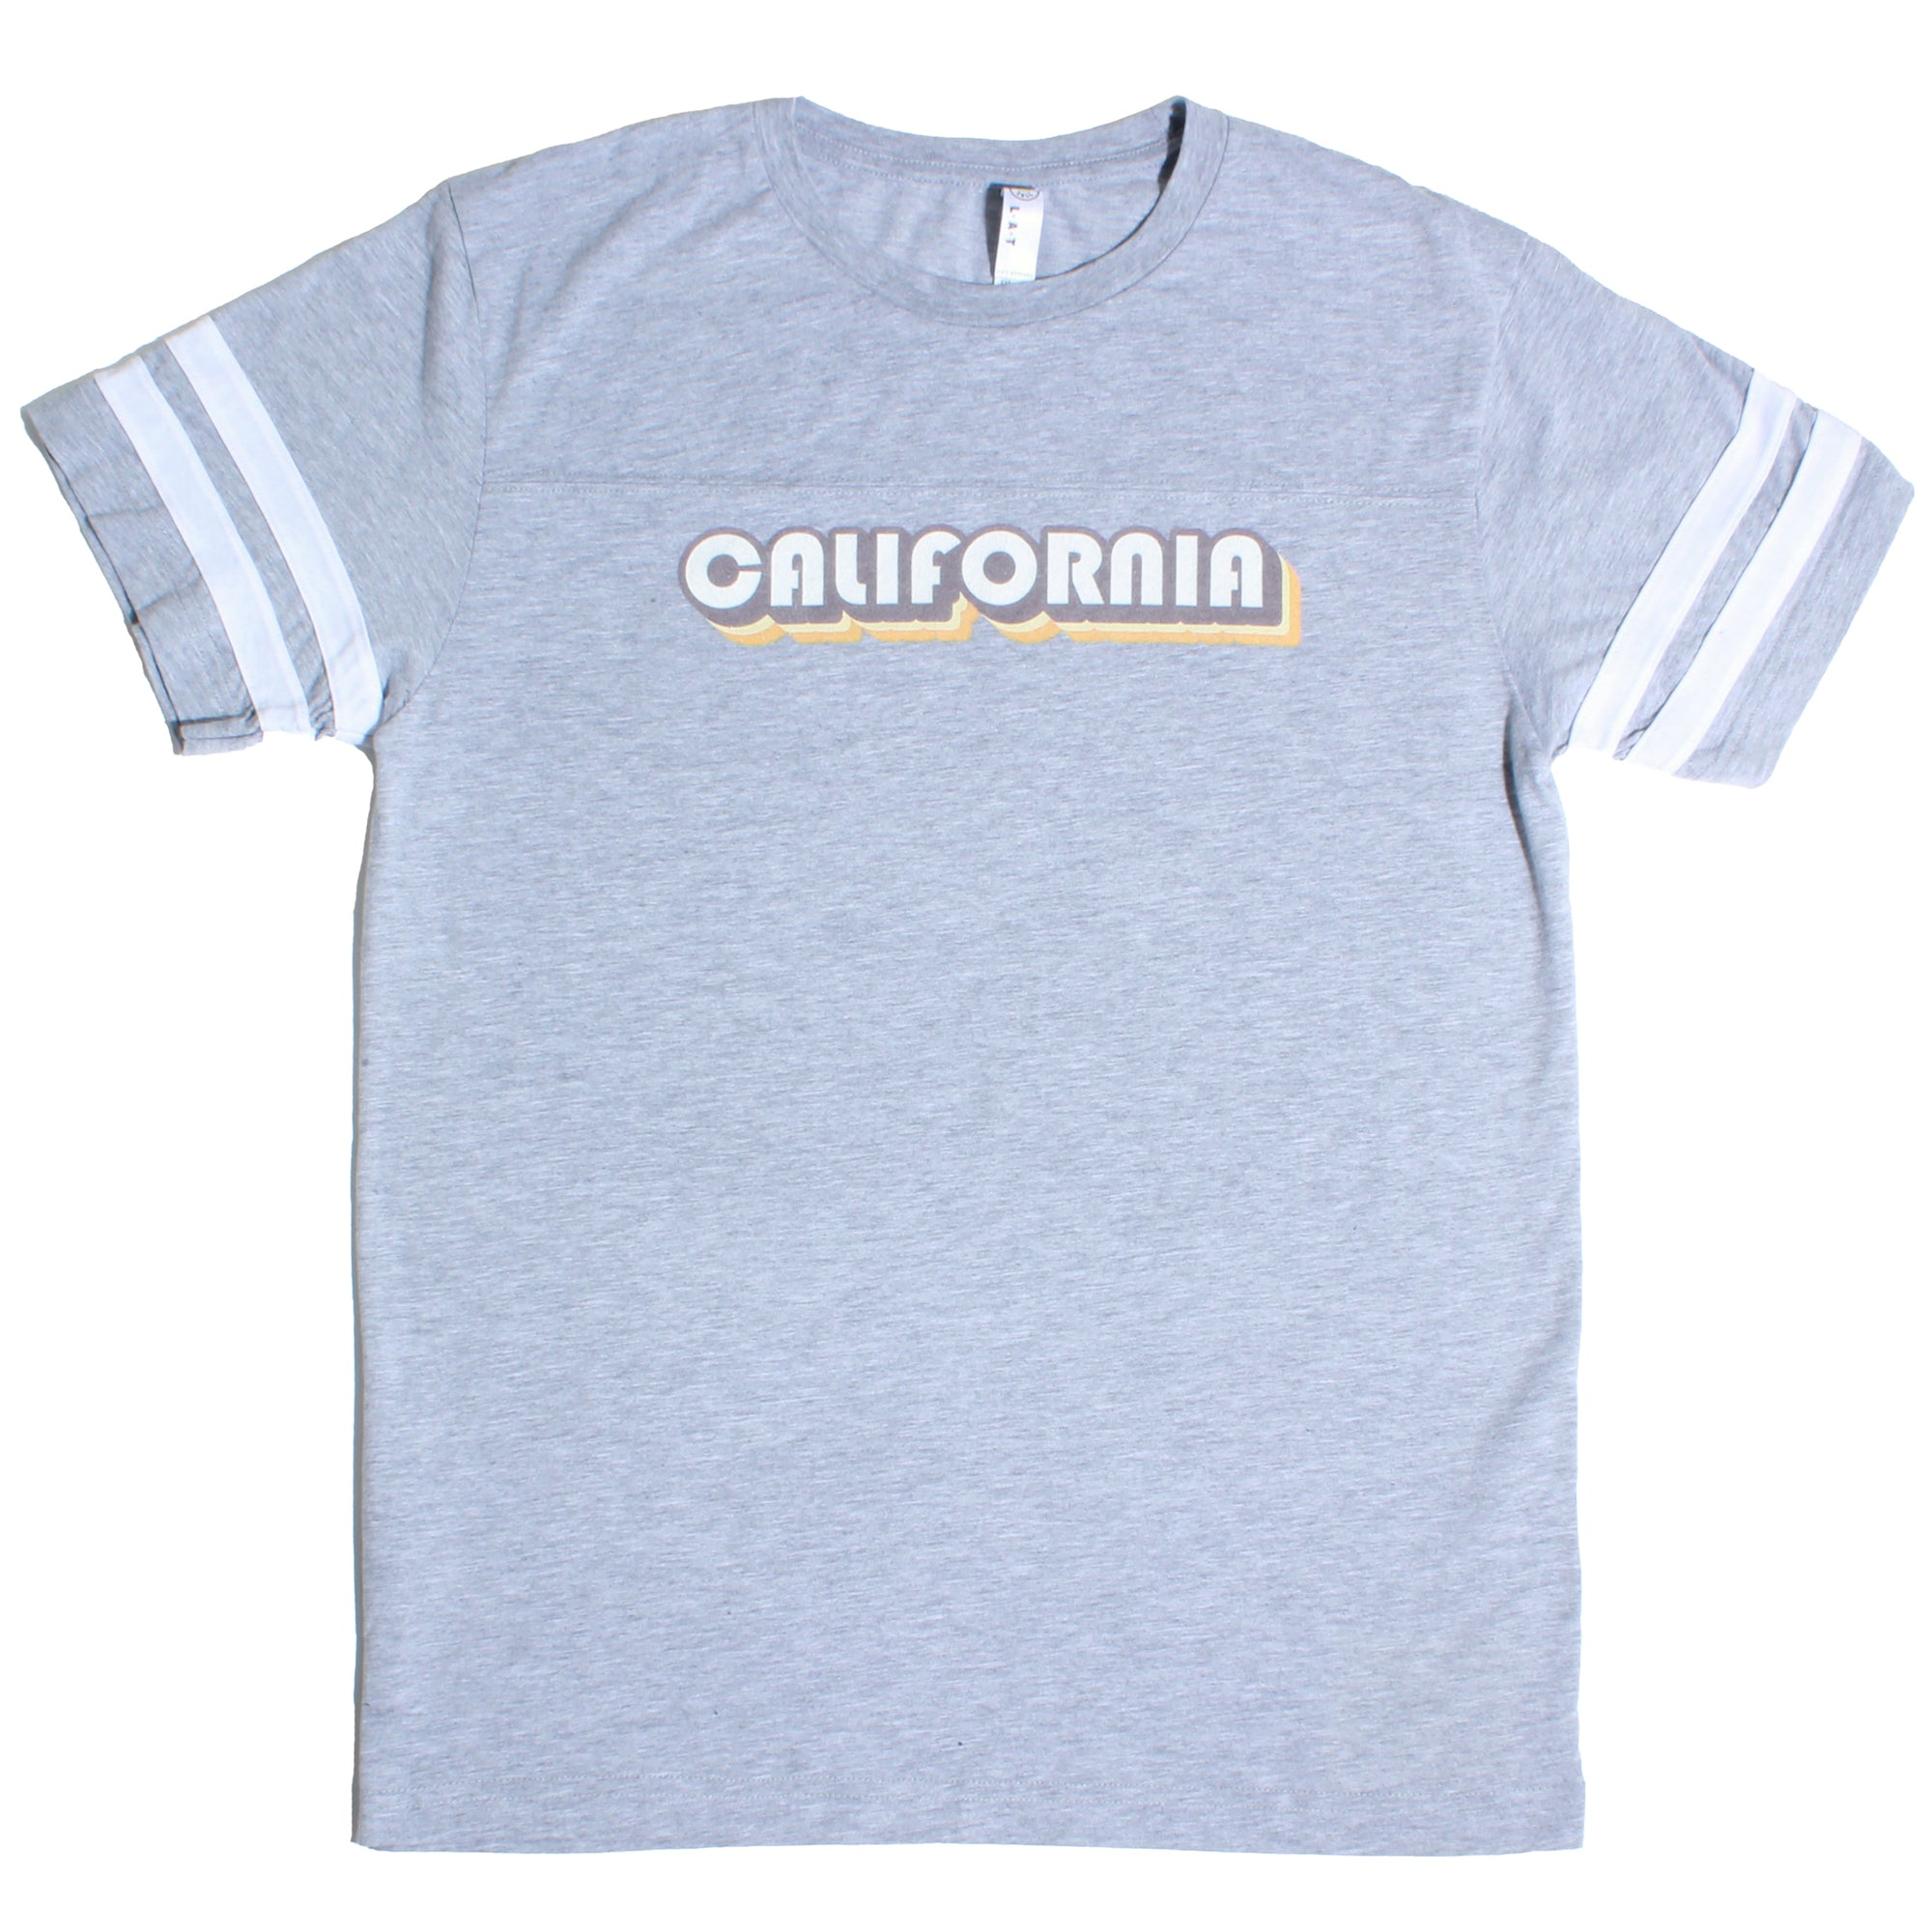 California Seventies Style Jersey T-Shirt